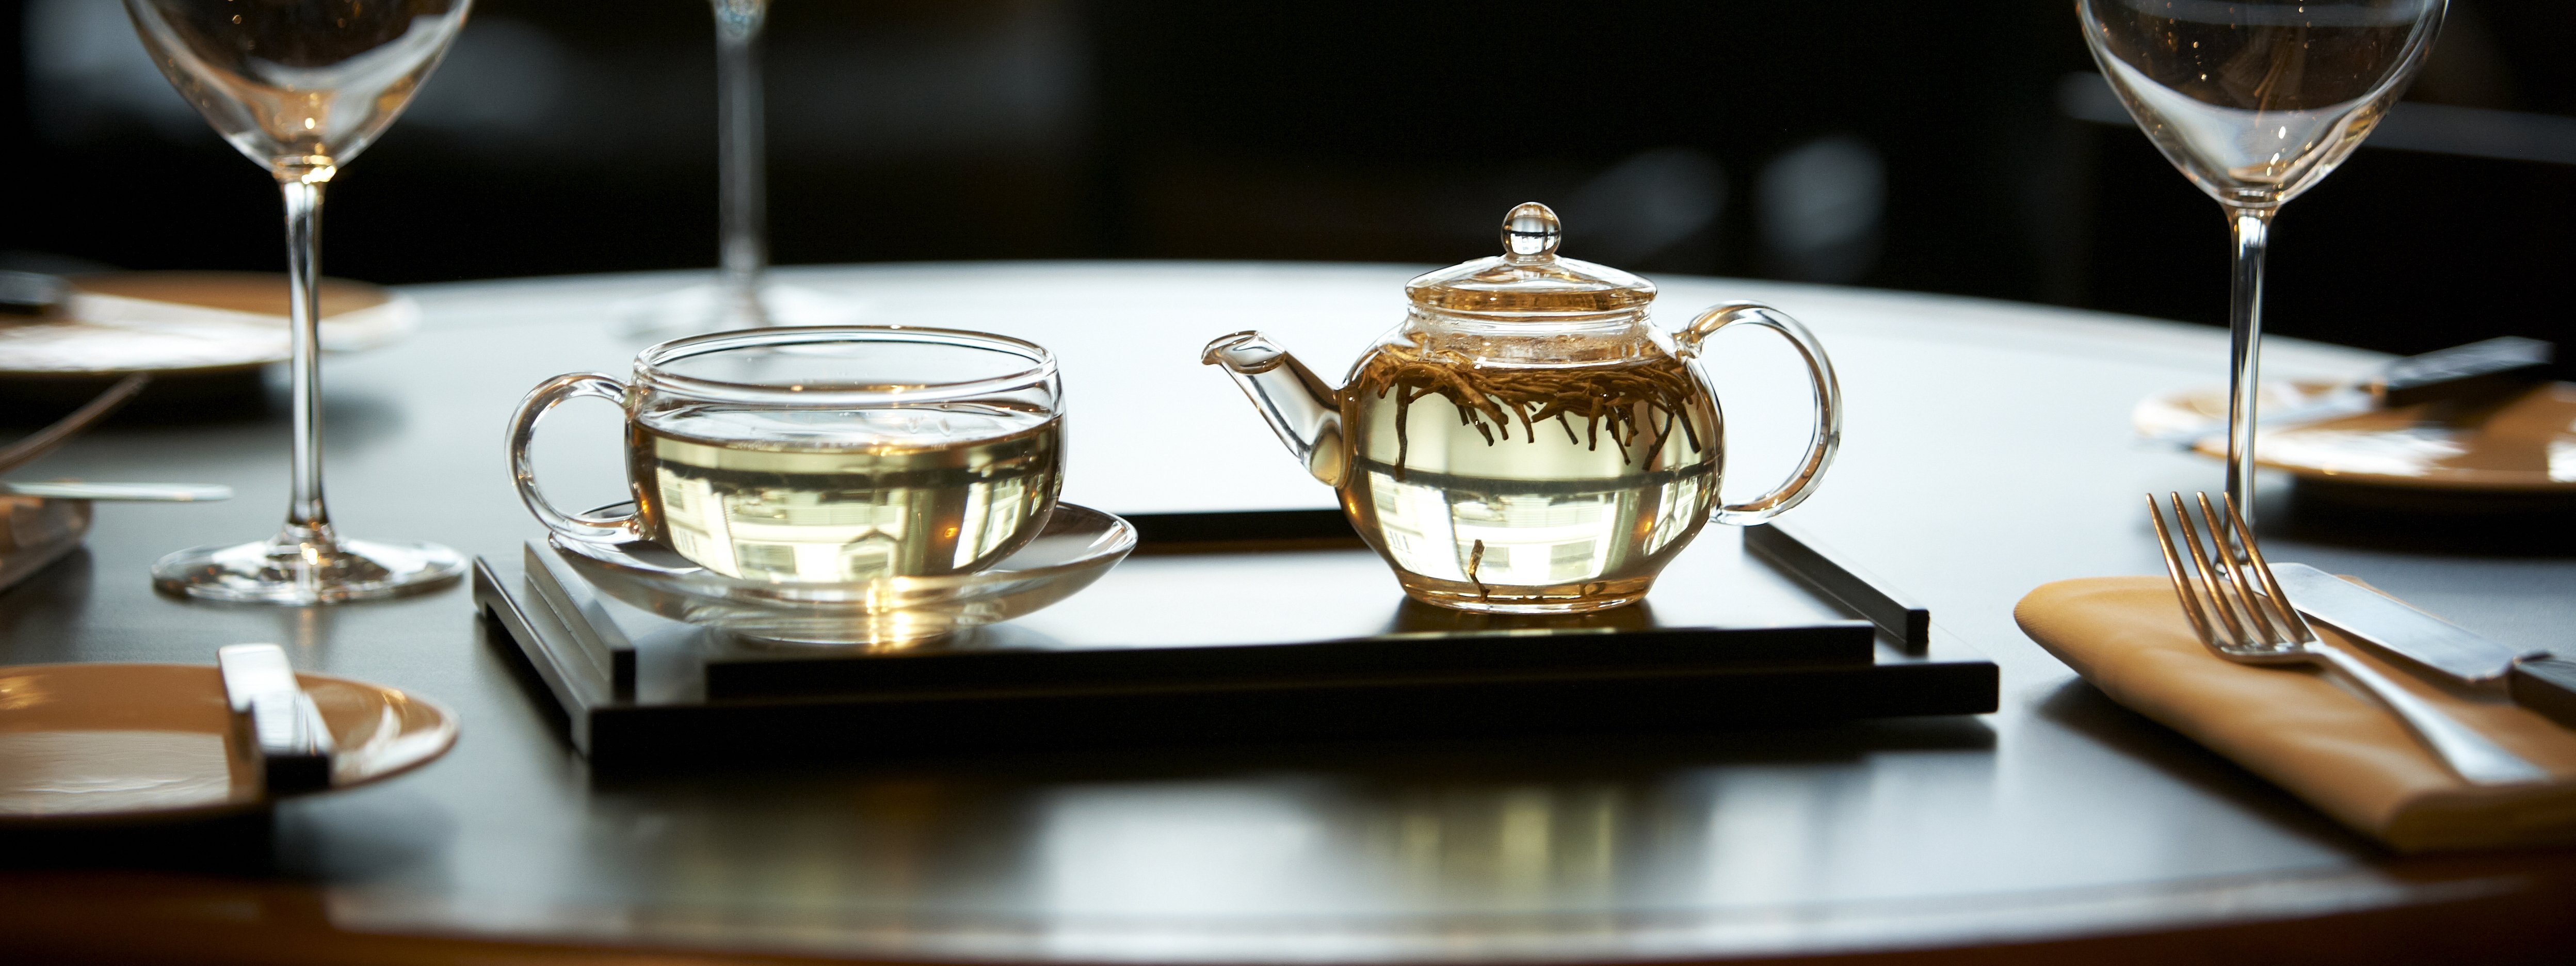 Lifestyle_One-Cup-Teapot_South-Place